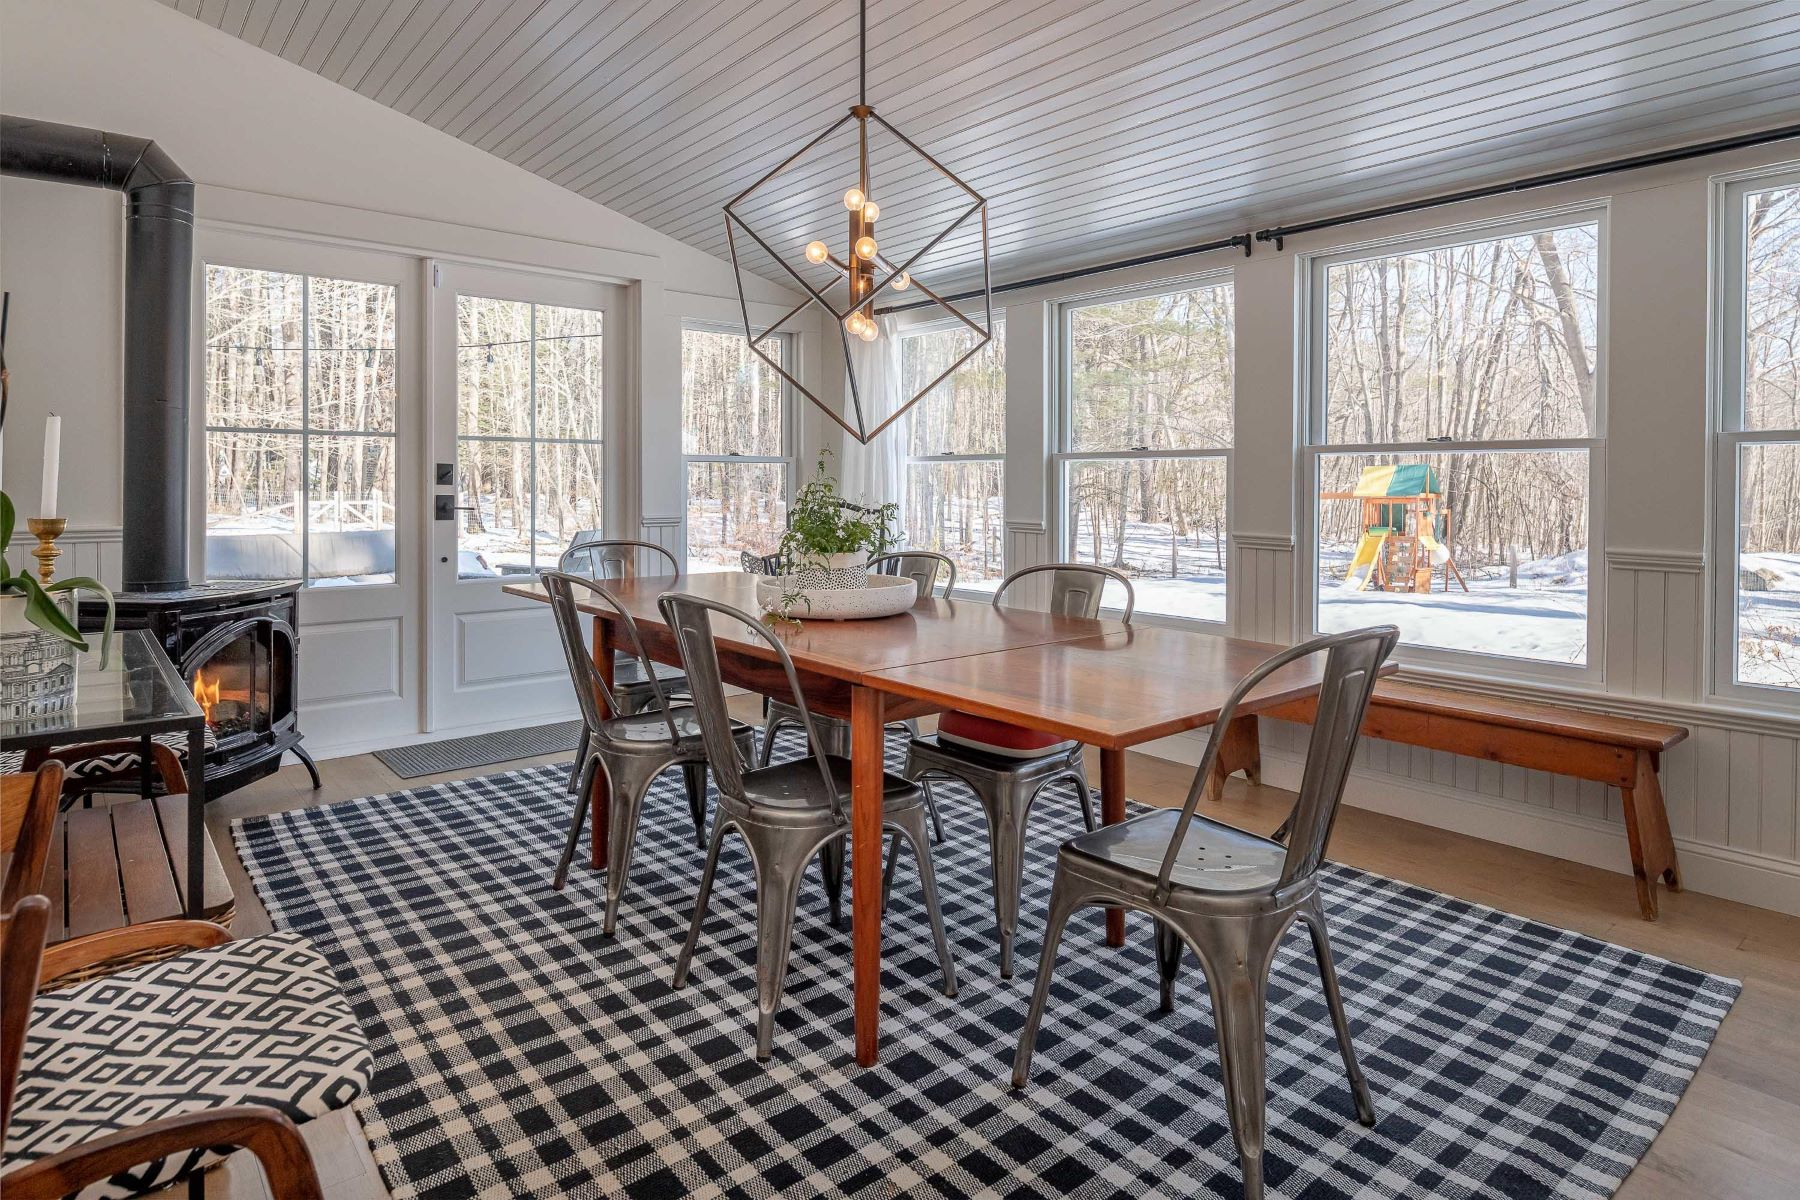 Single Family Homes for Sale at 141 Falmouth Road Falmouth, Maine 04105 United States